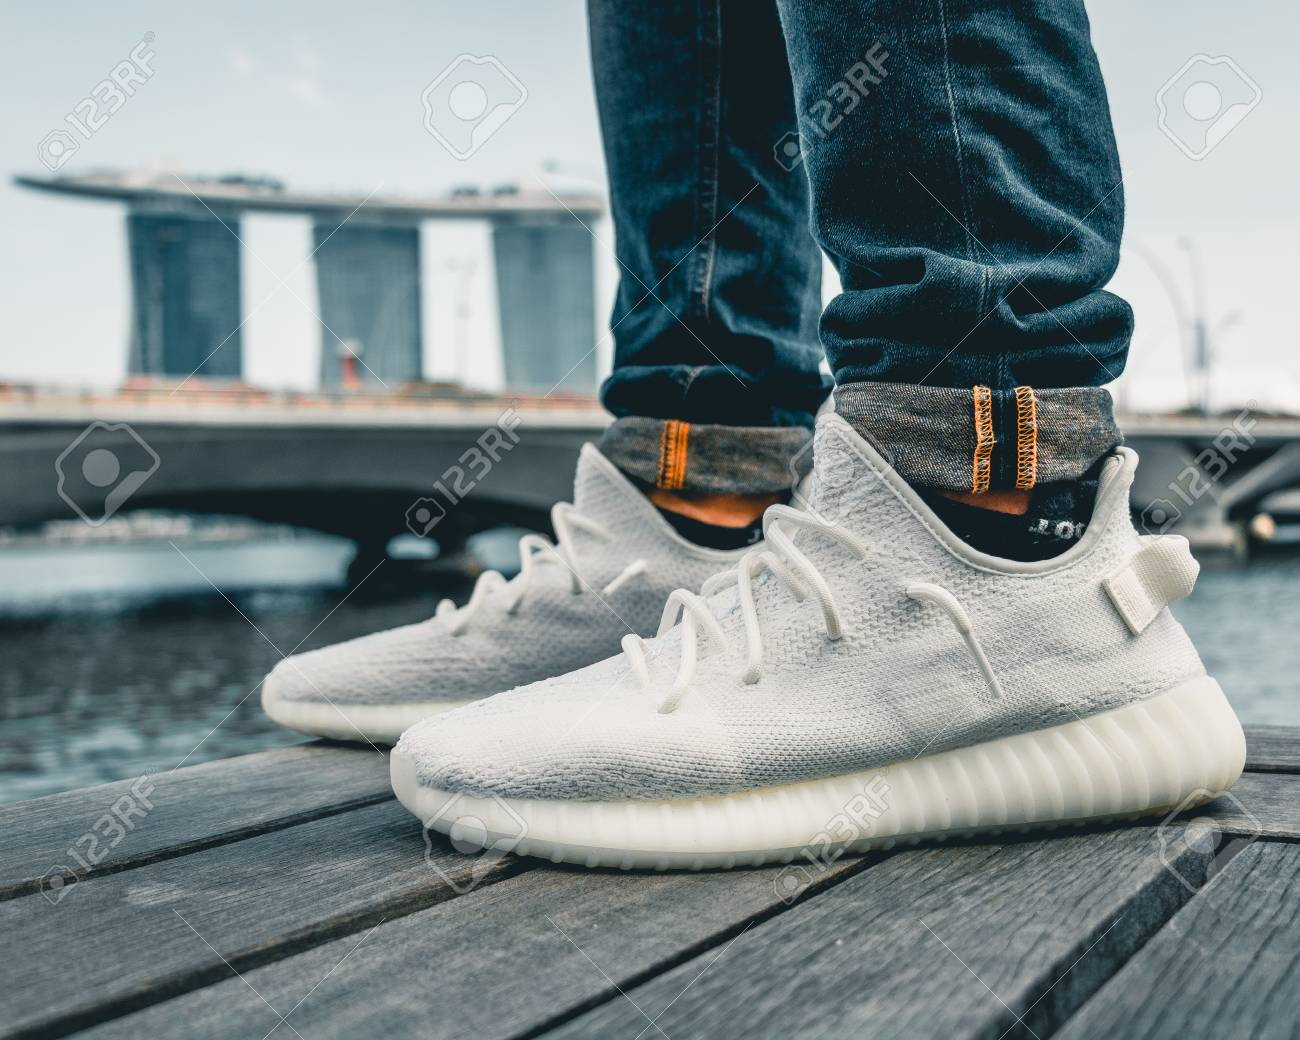 yeezy 350 cream white outfit